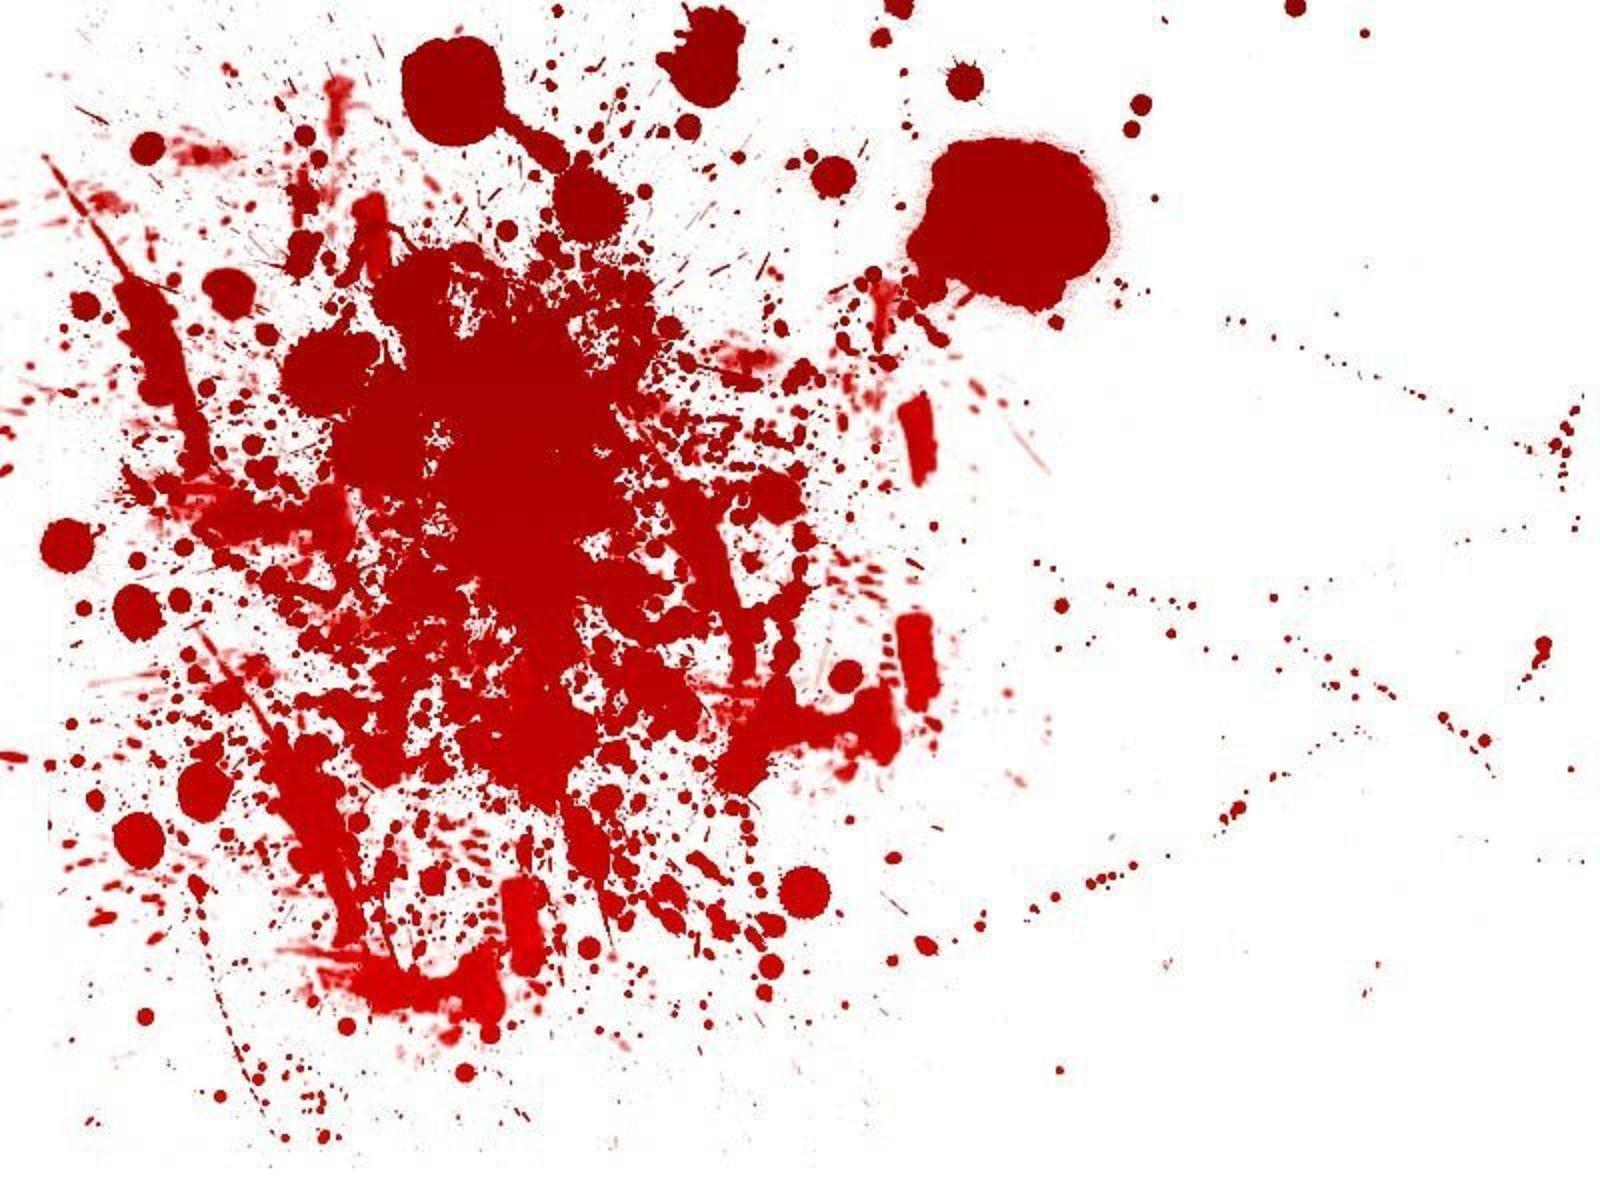 Blood   Human Blood Wallpaper  22467979    Fanpop